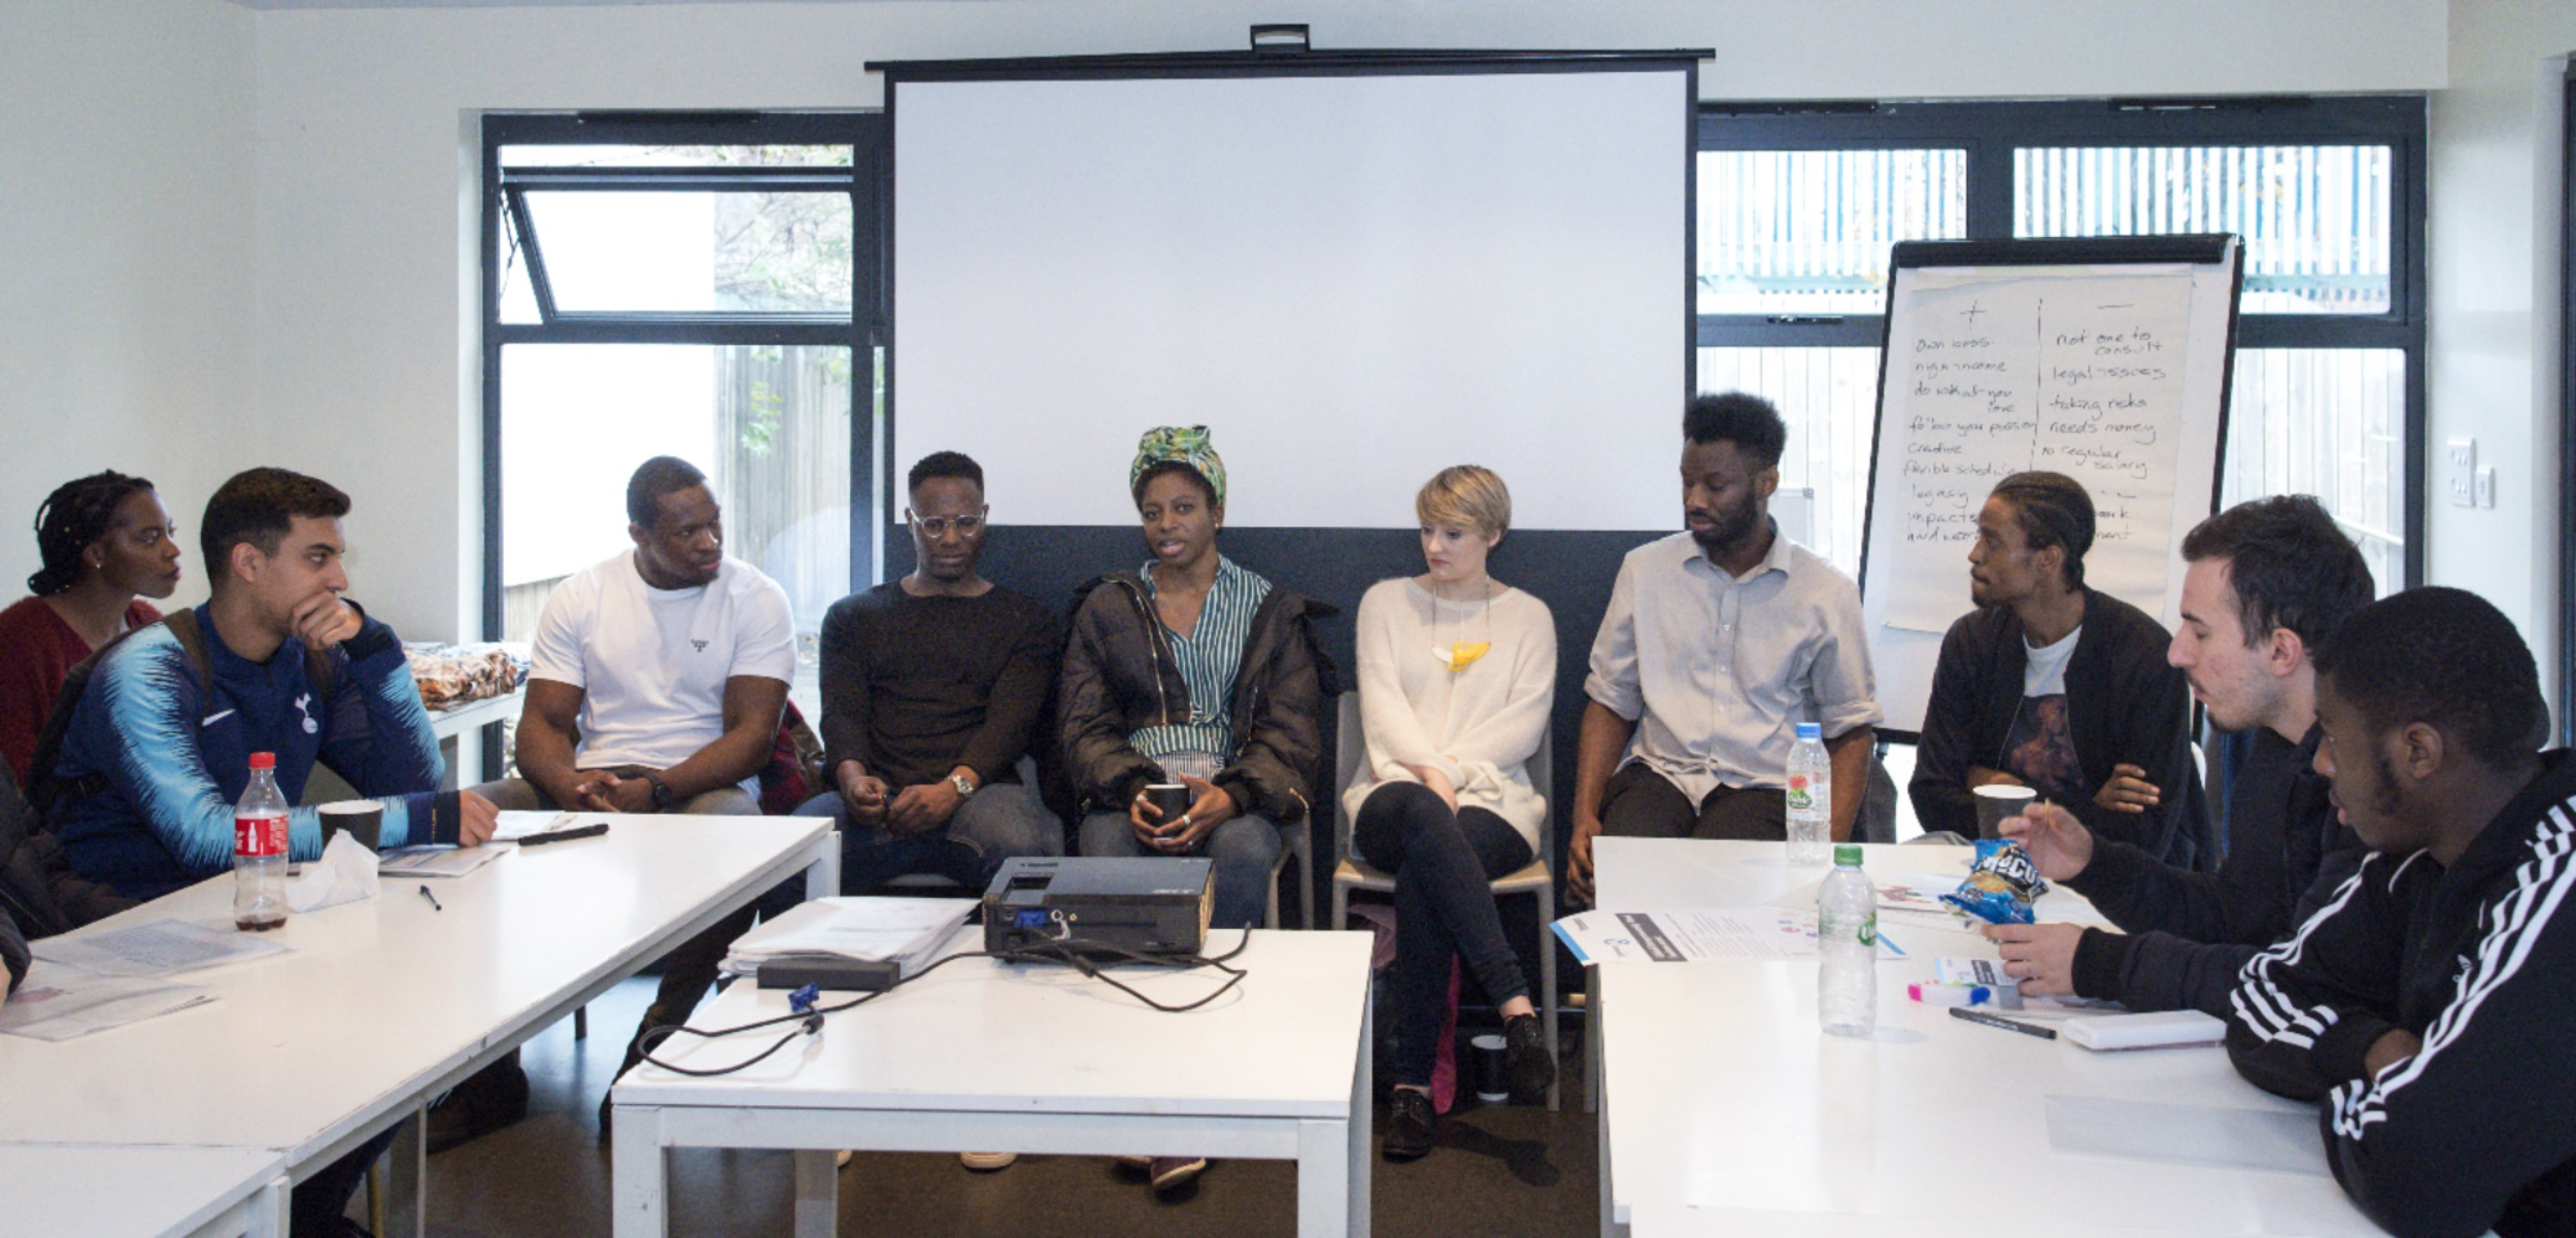 Students in discussion with young entrepreneurs